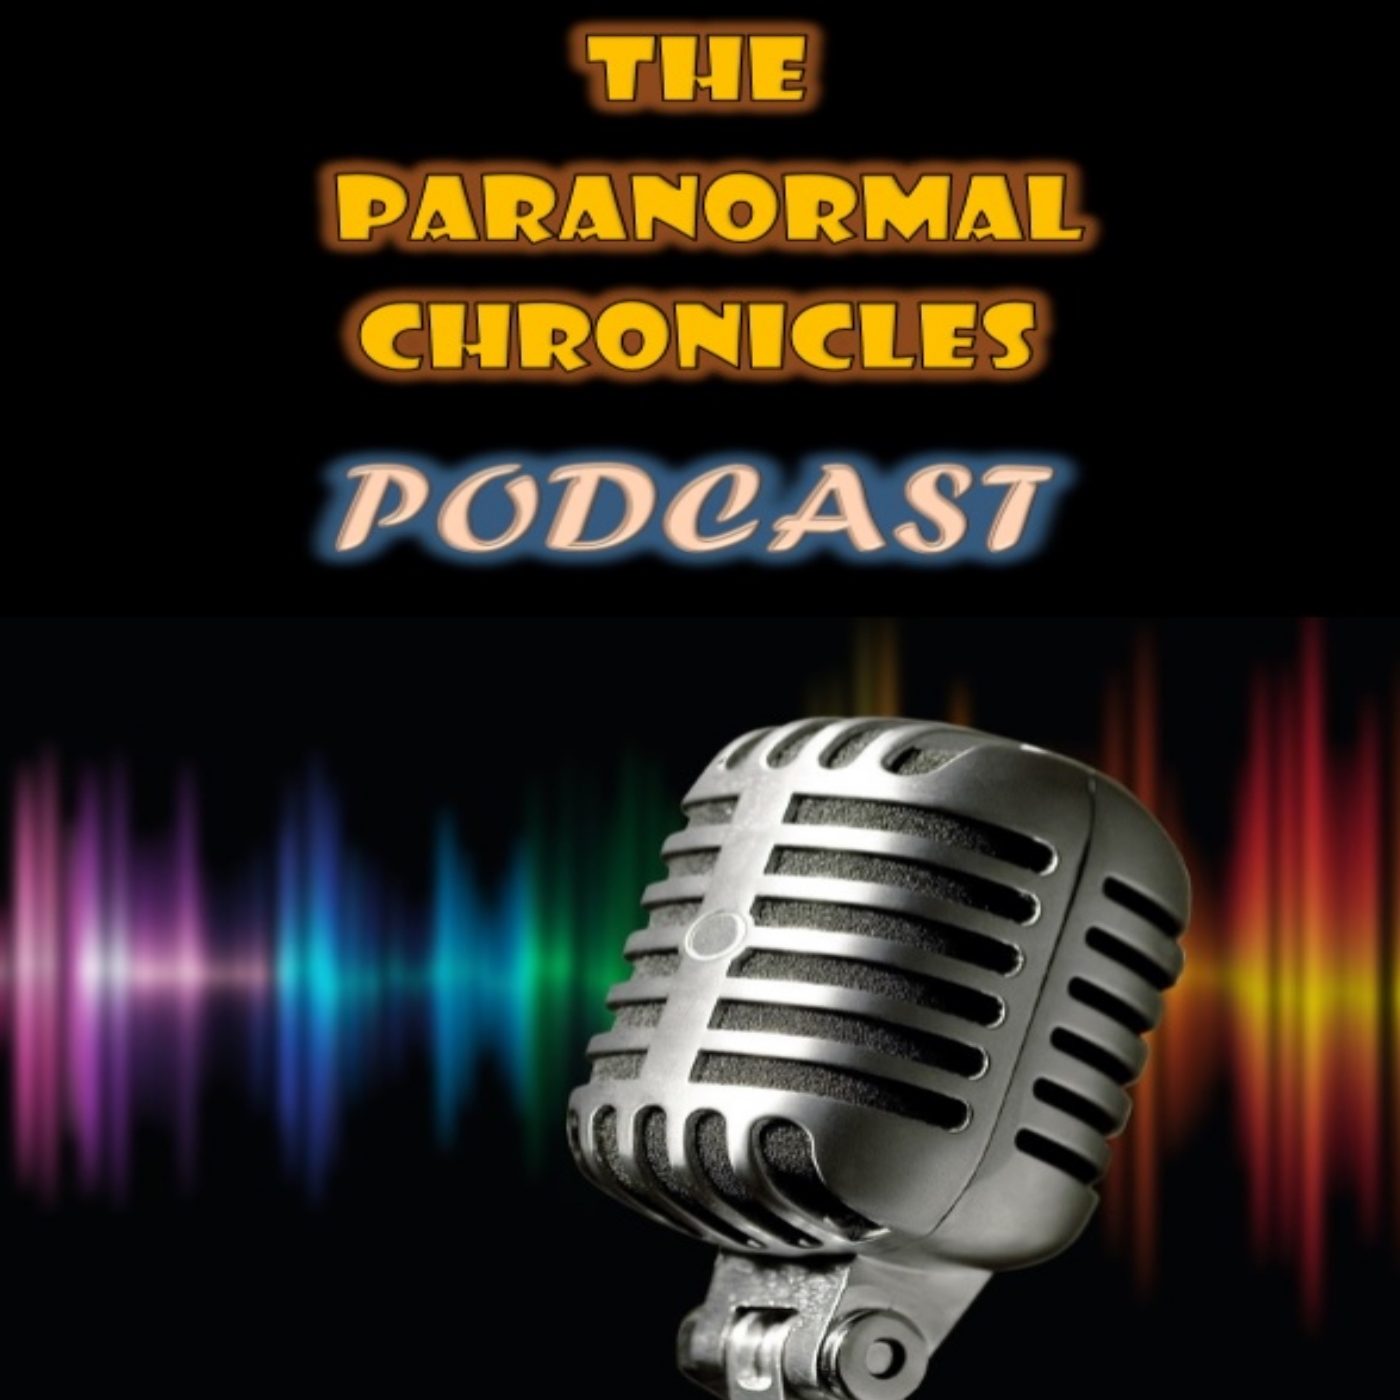 The paranormal chronciles podcast